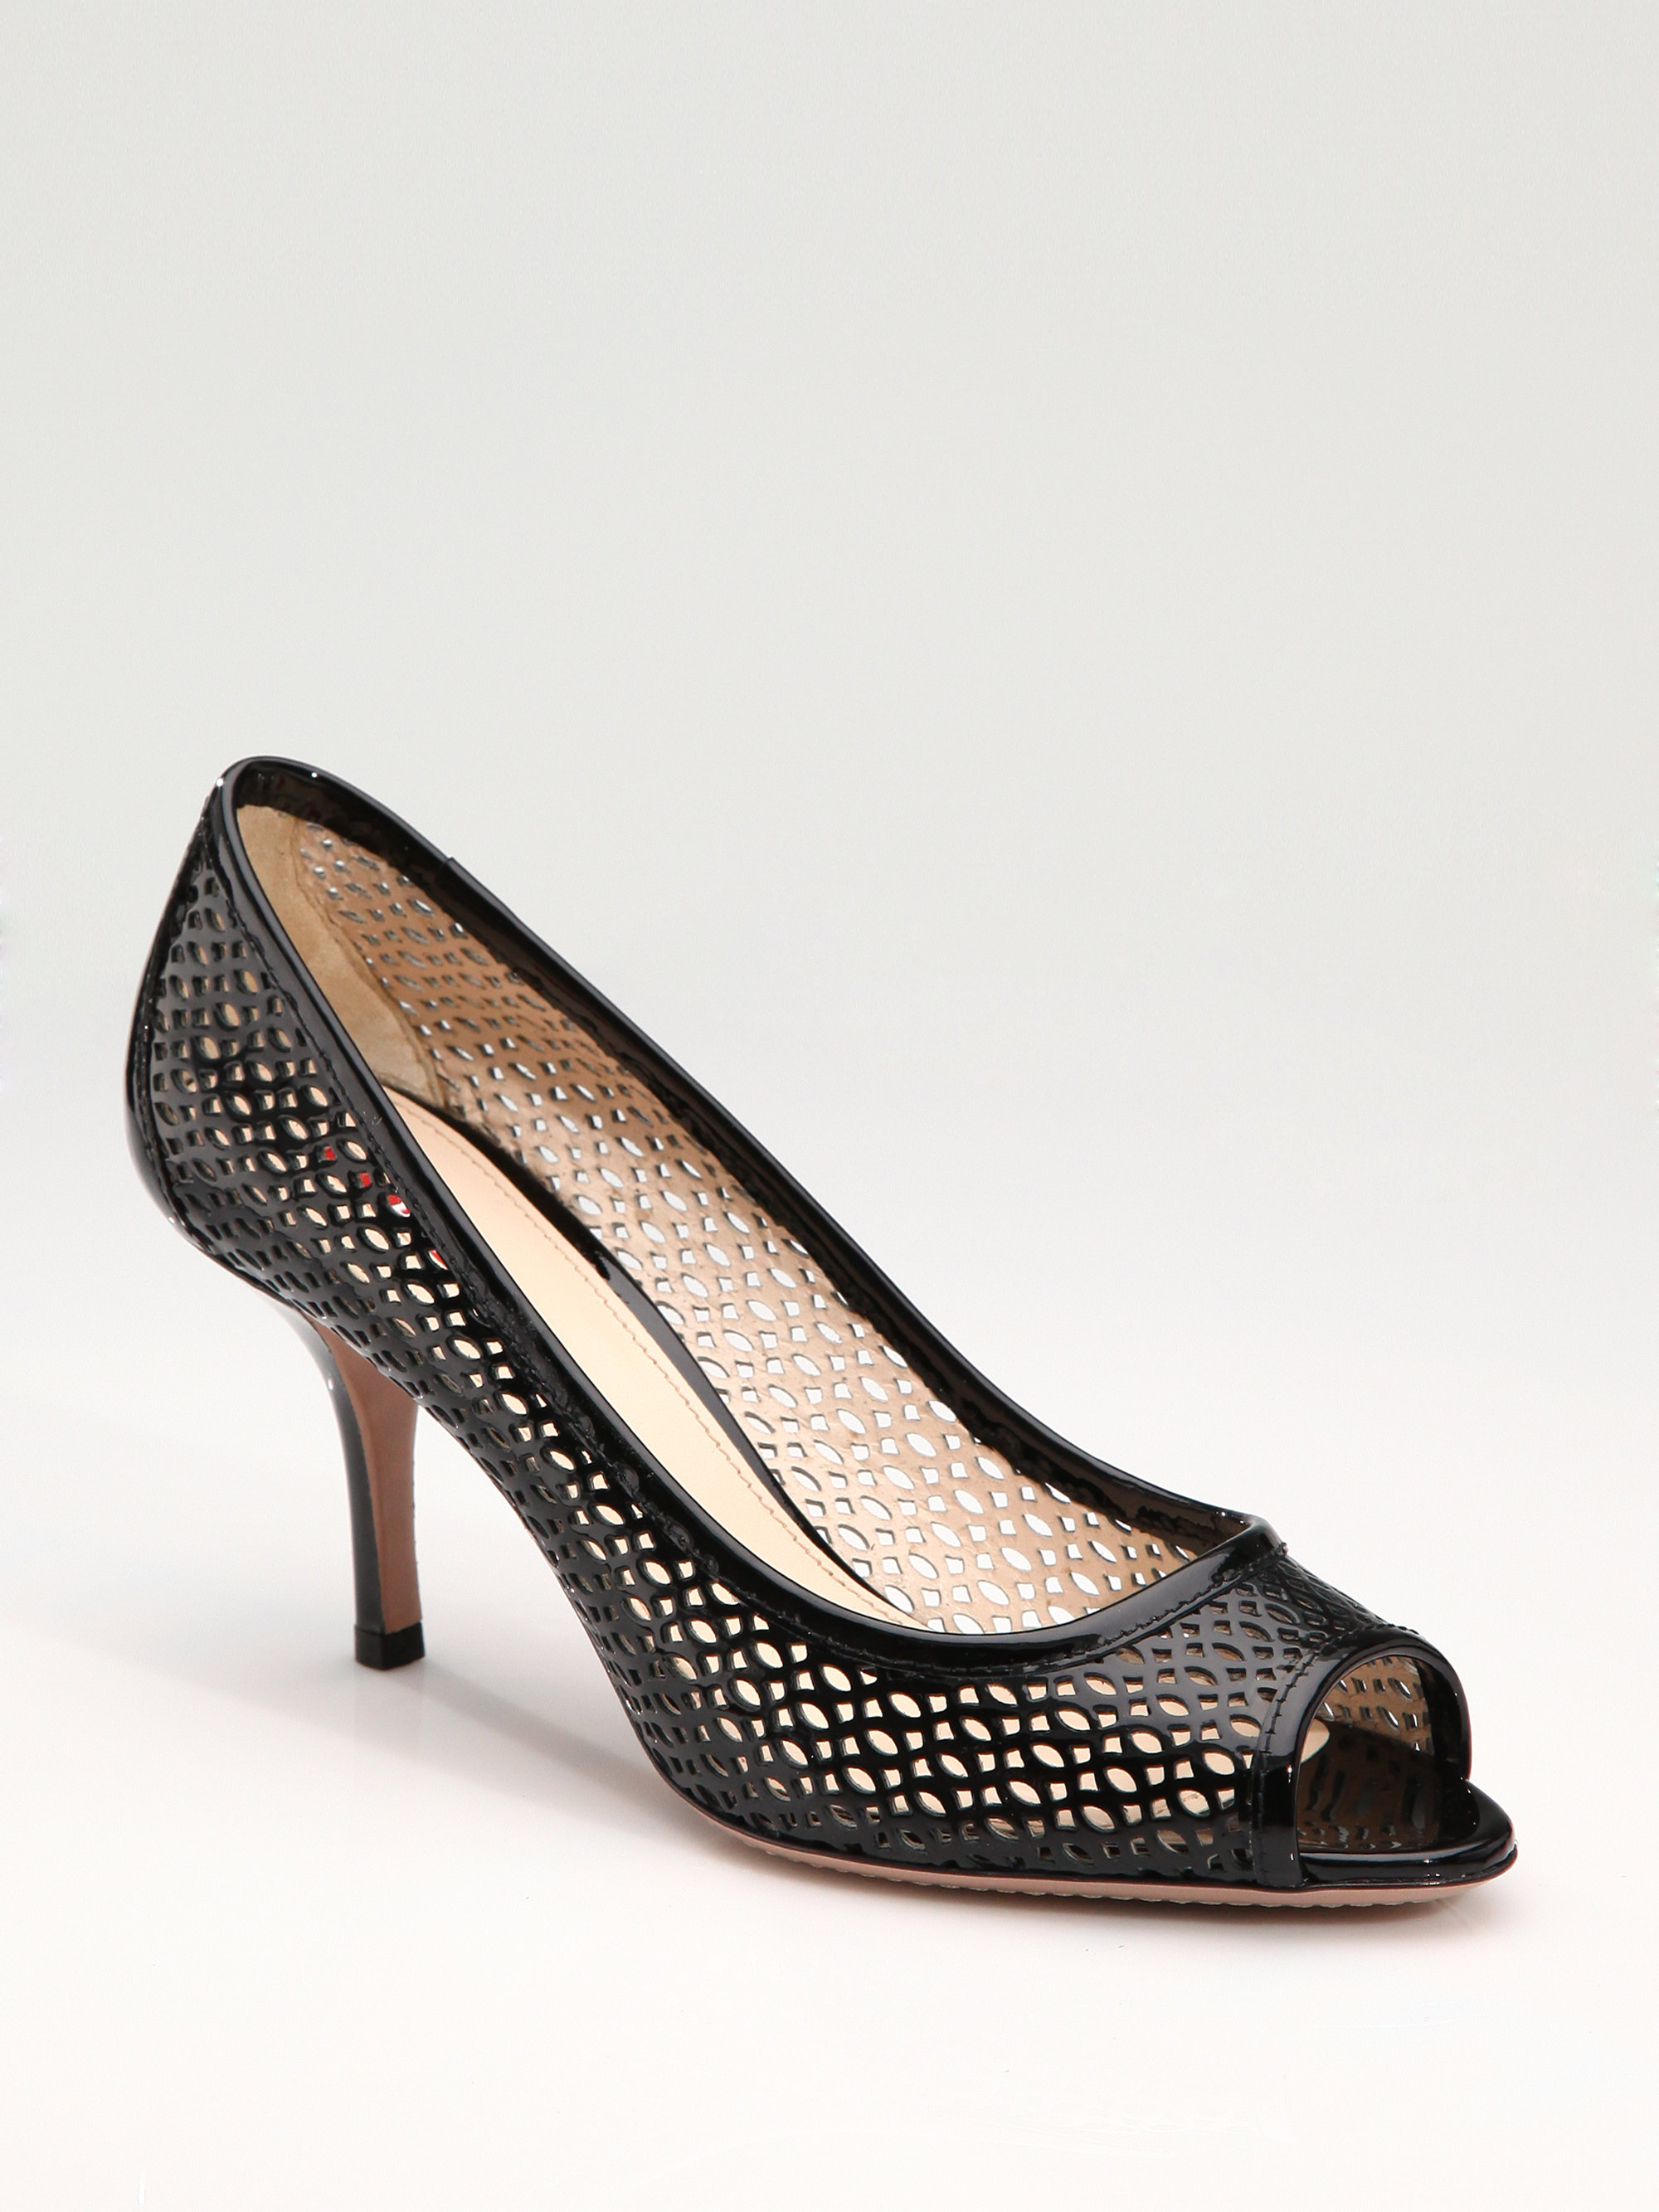 discount exclusive Prada Laser Cut Leather Pumps pictures cheap price great deals sale online sale best sale 0zBo7